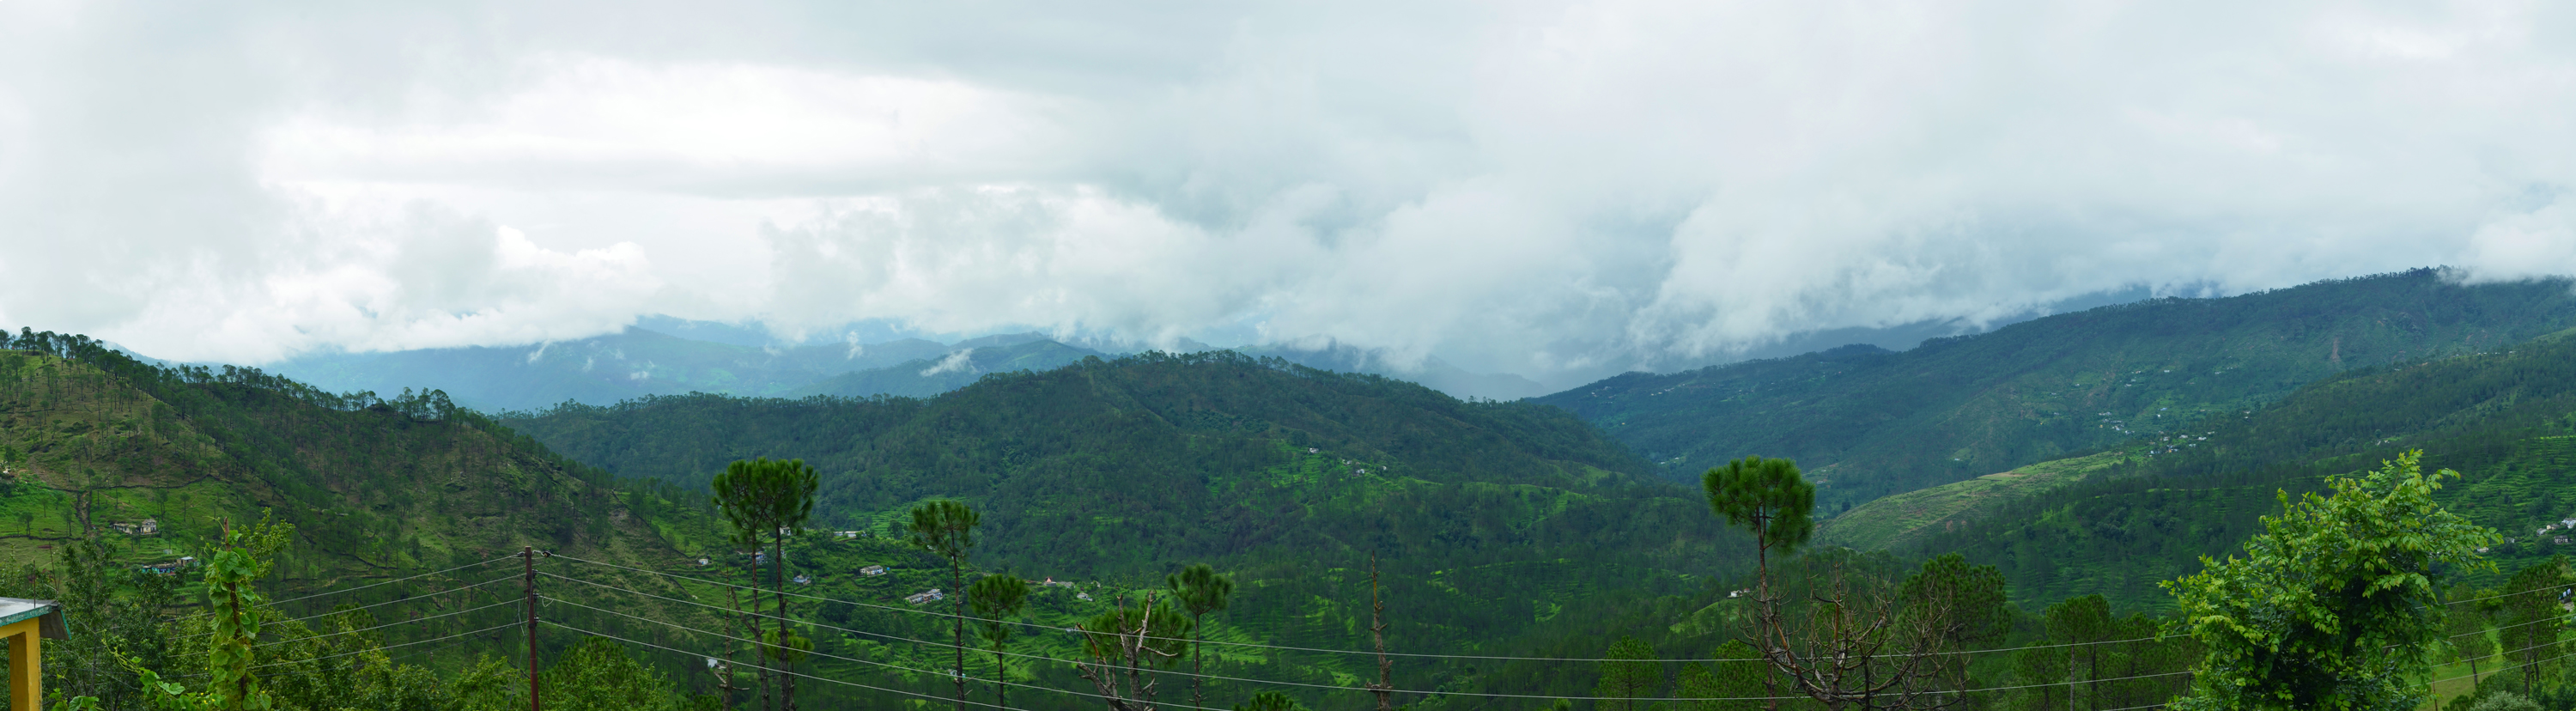 Binsar Wildlife Sanctuary: © Priyambada Nath flickr user